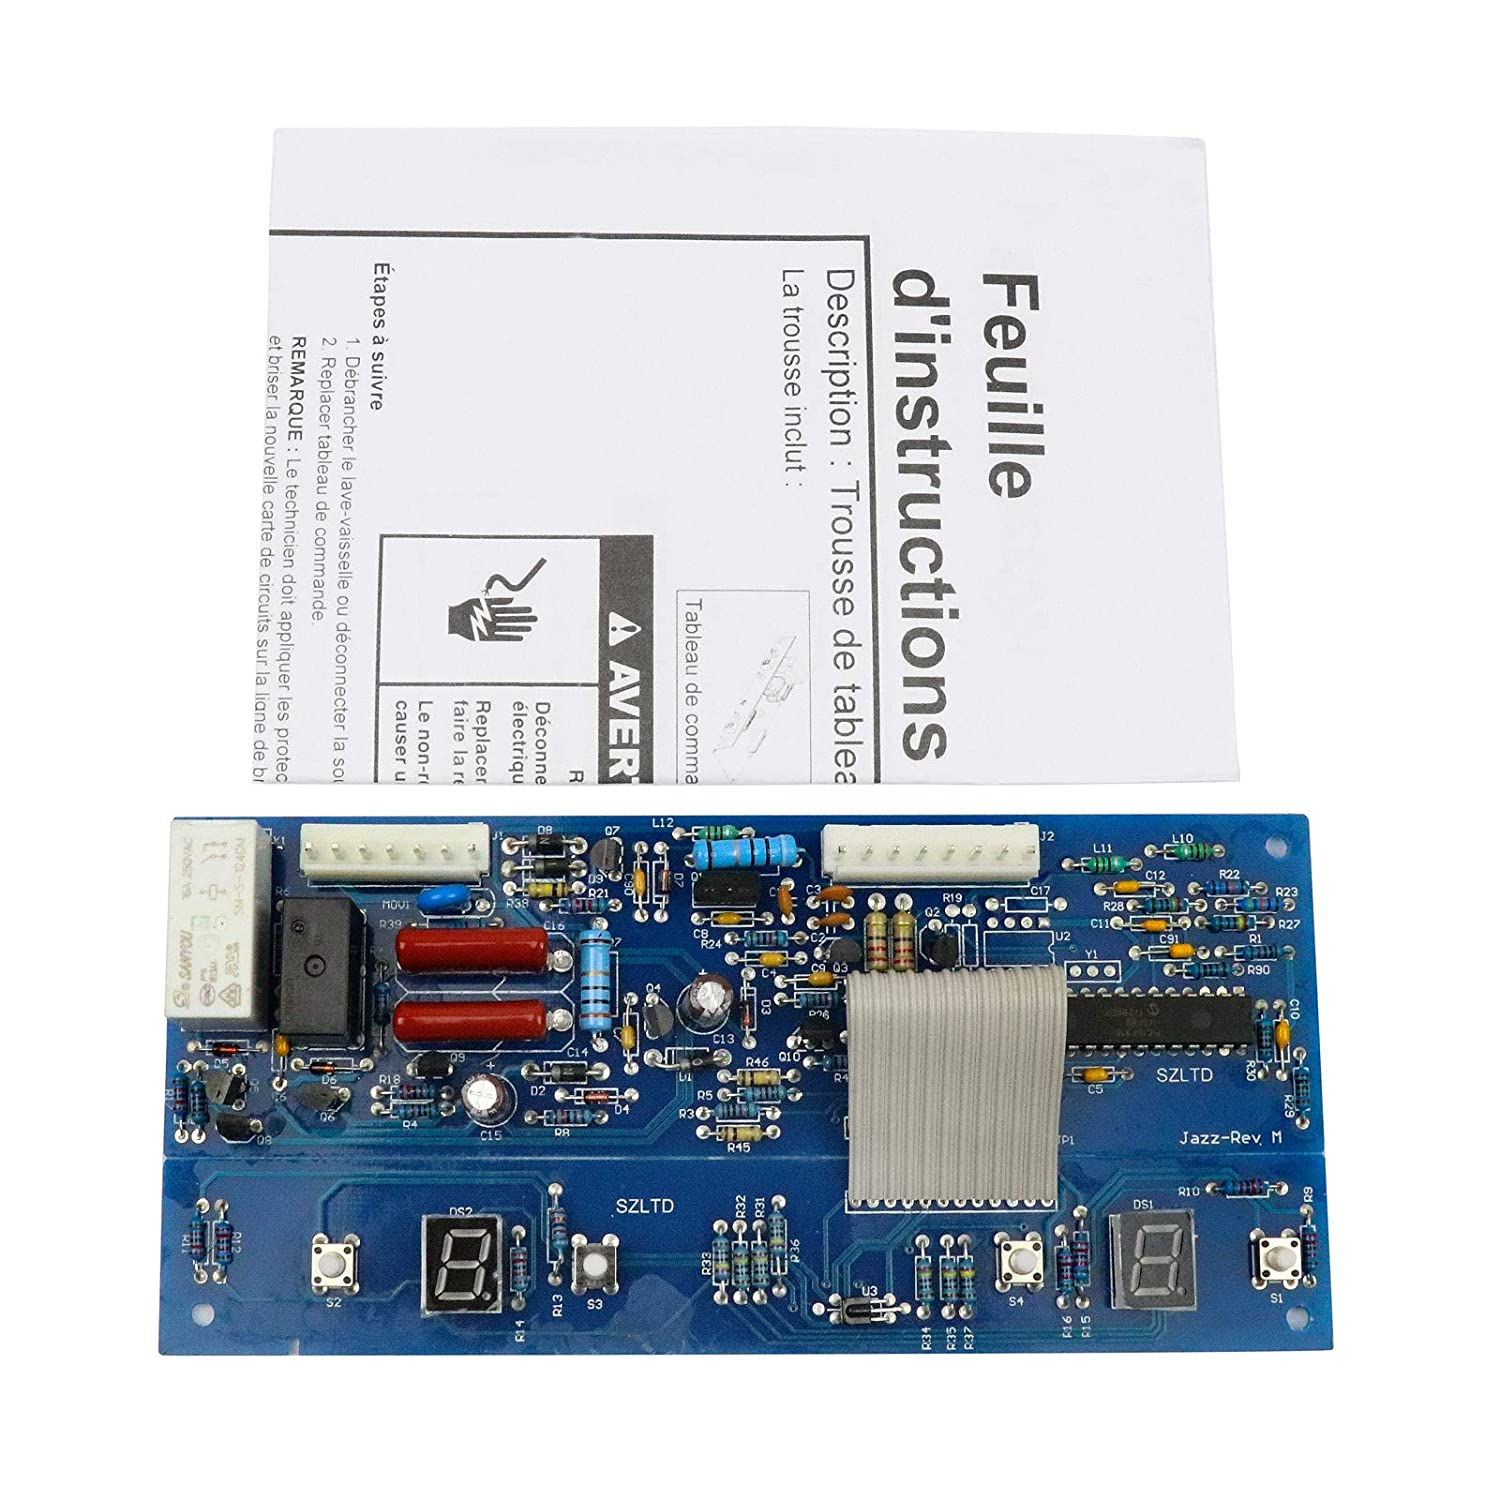 NEW Refrigerator Control Board Replacement for Whirlpool Maytag W10503278, 12784415, 12868513, AP6022400, PS11755733, W10165748